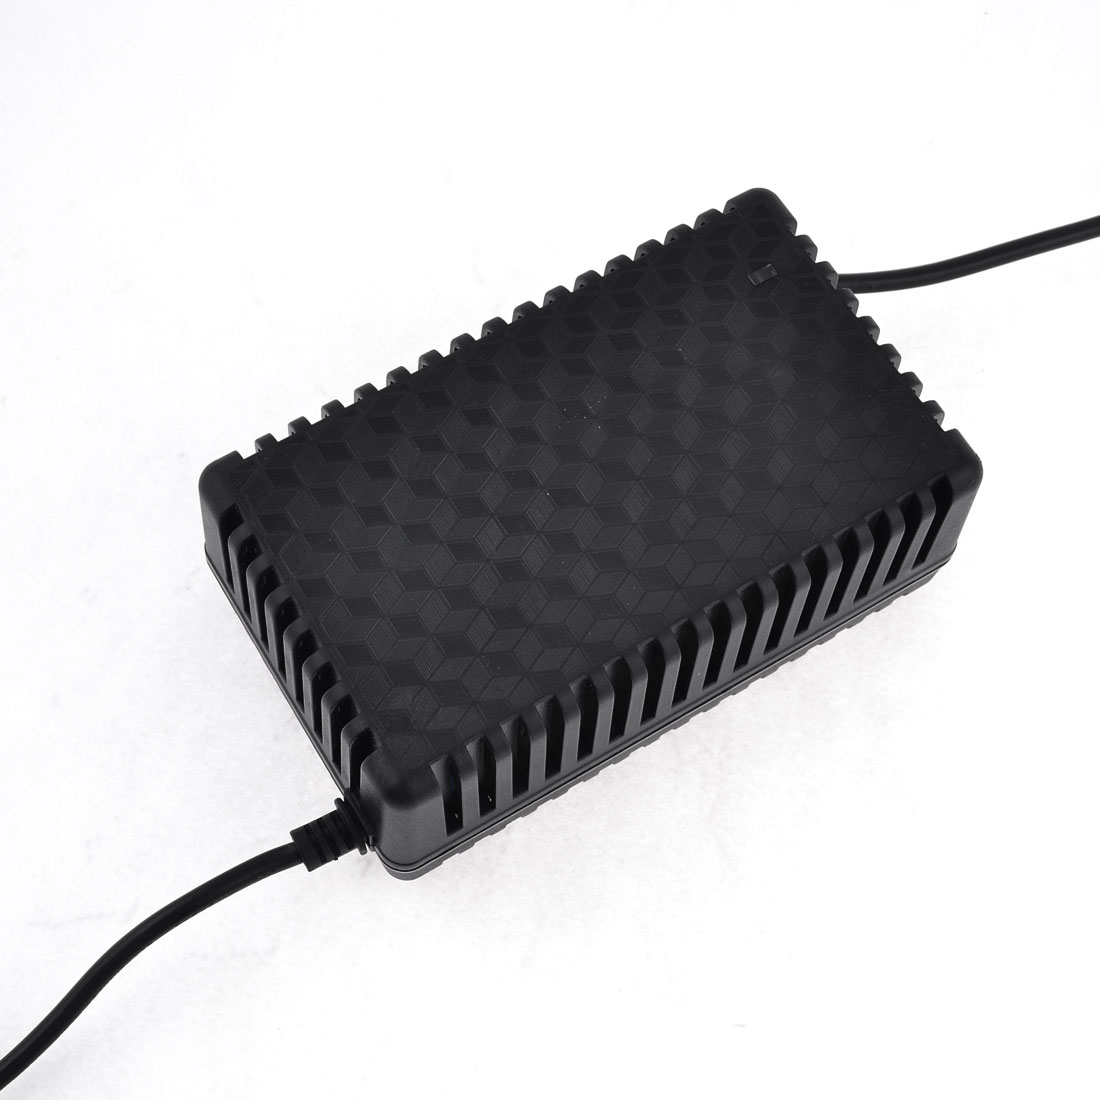 36V 12/14AH 1P BNS Male Port Electromobile Battery Charger AC 110-220V US Plug